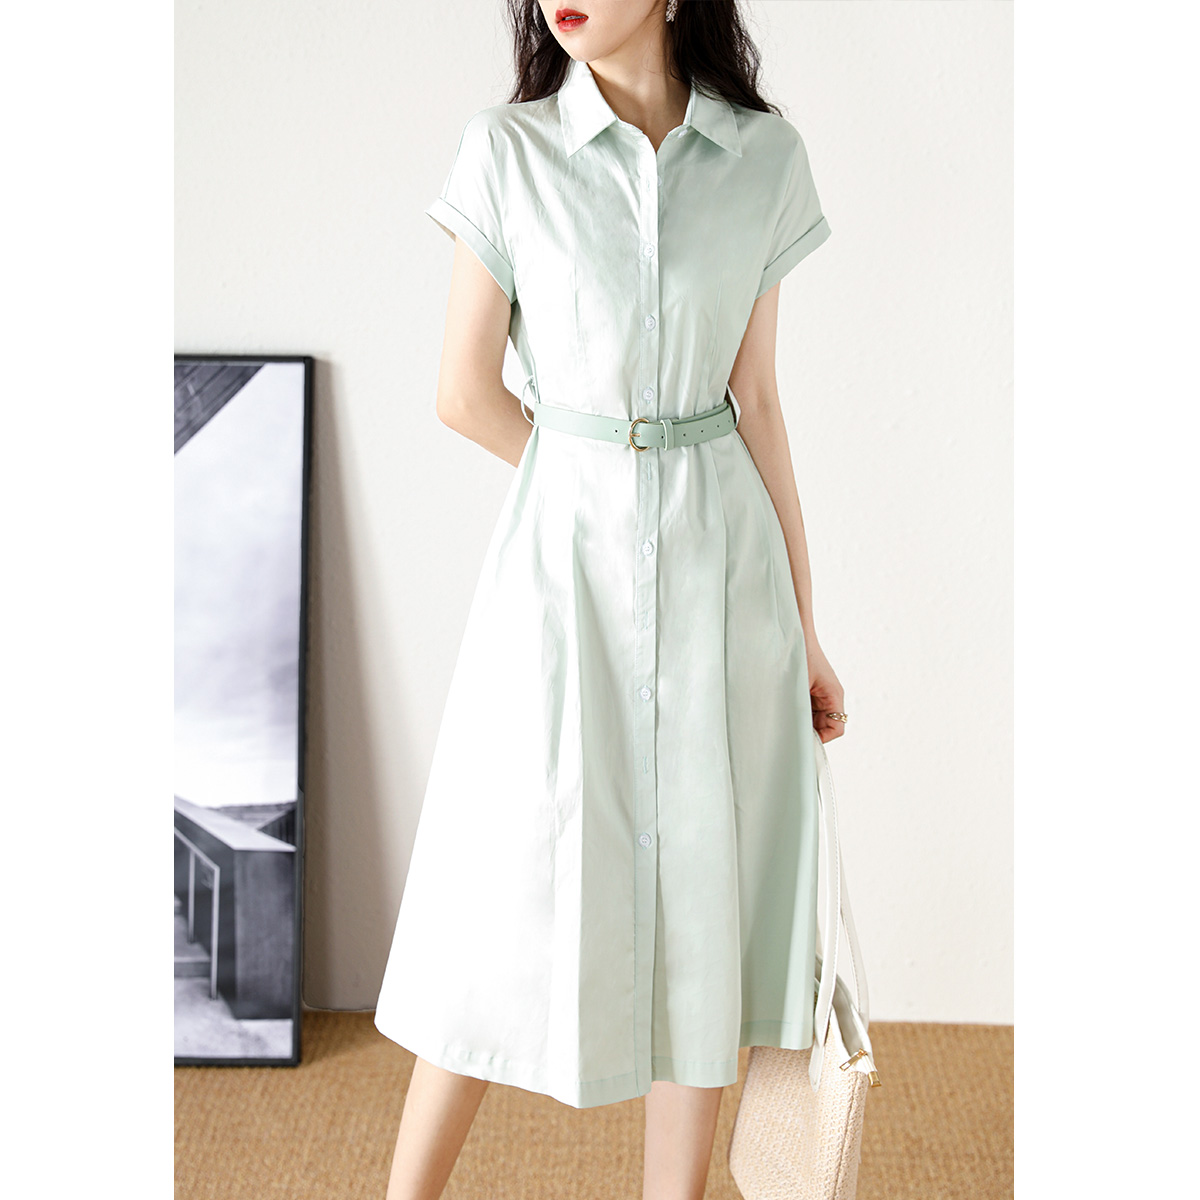 Xiqing cotton A-line shirt skirt 2021 new French niche design simple slim dress